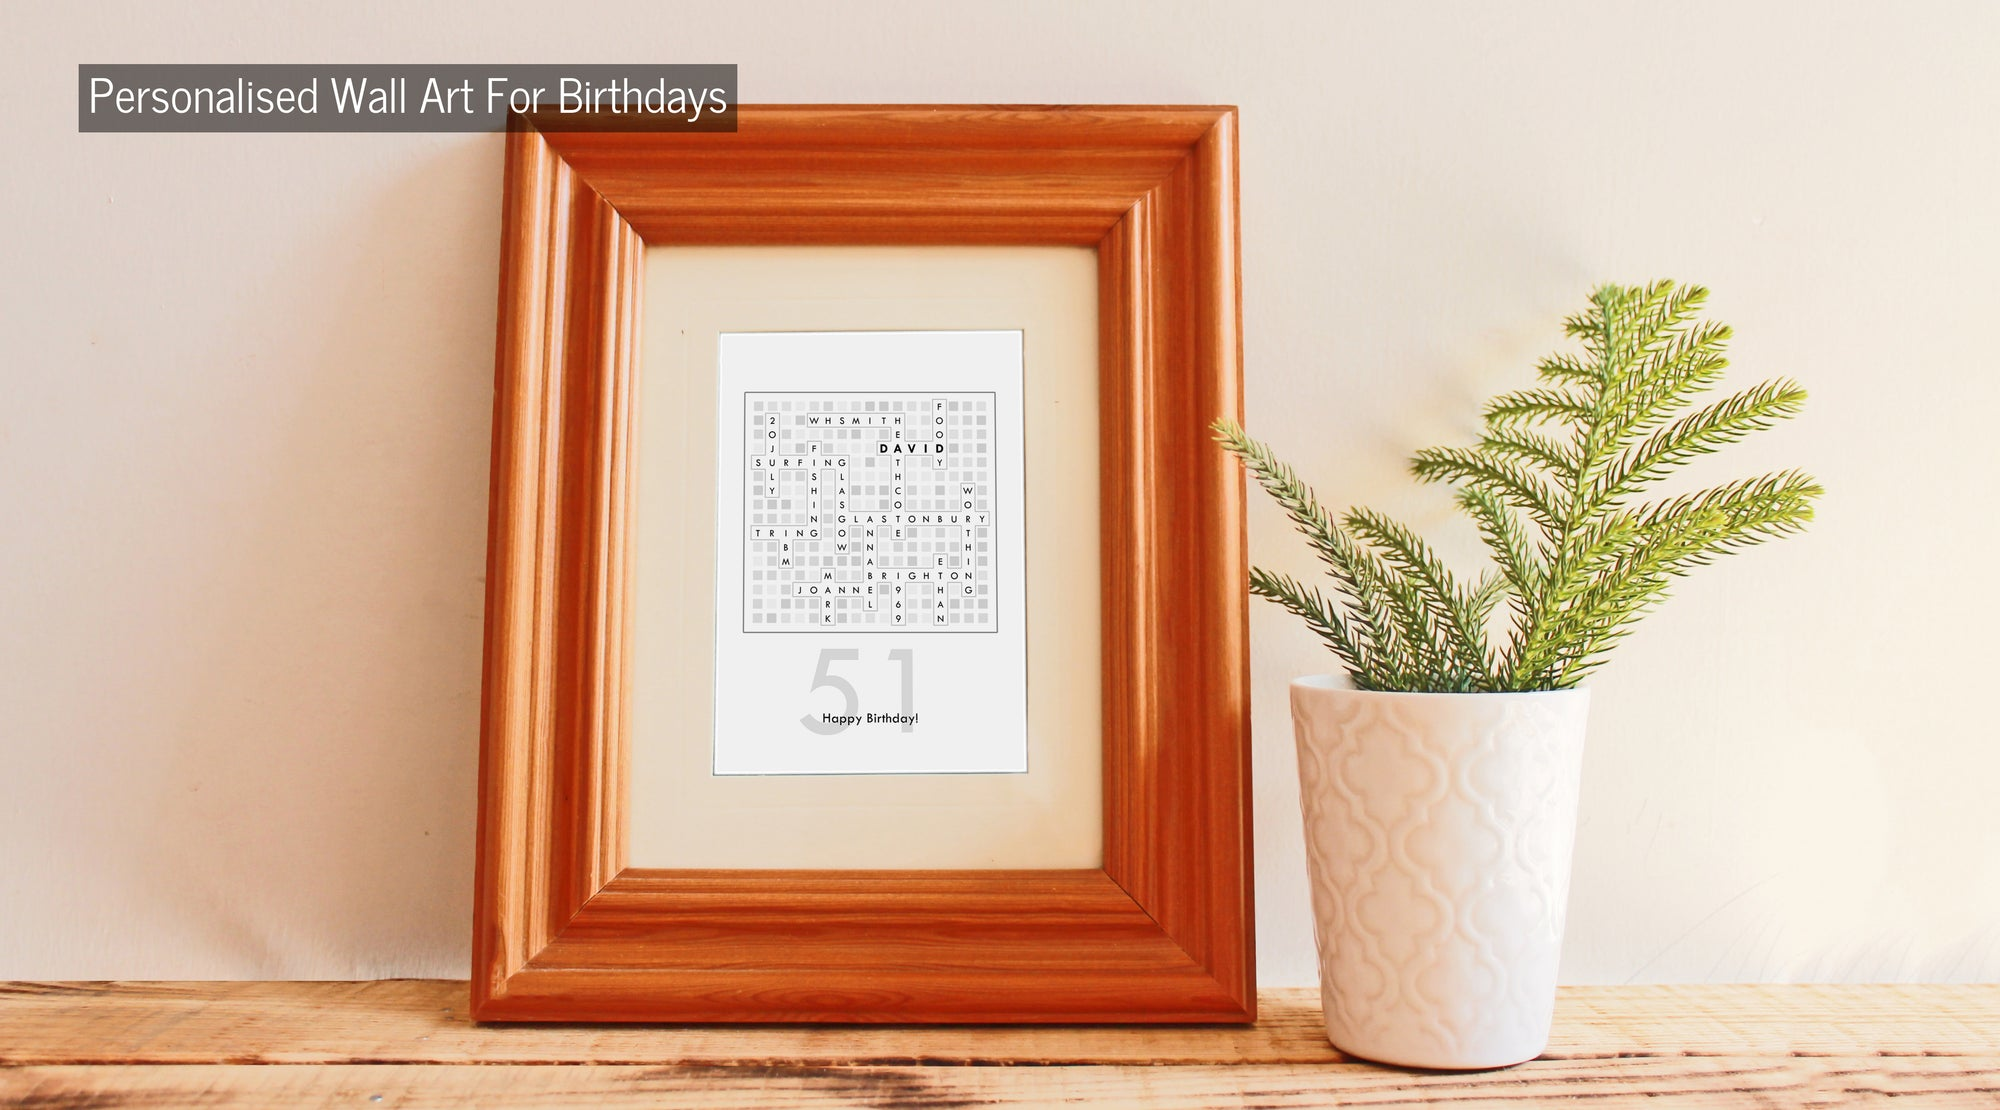 Personalised Birthday Wall Art